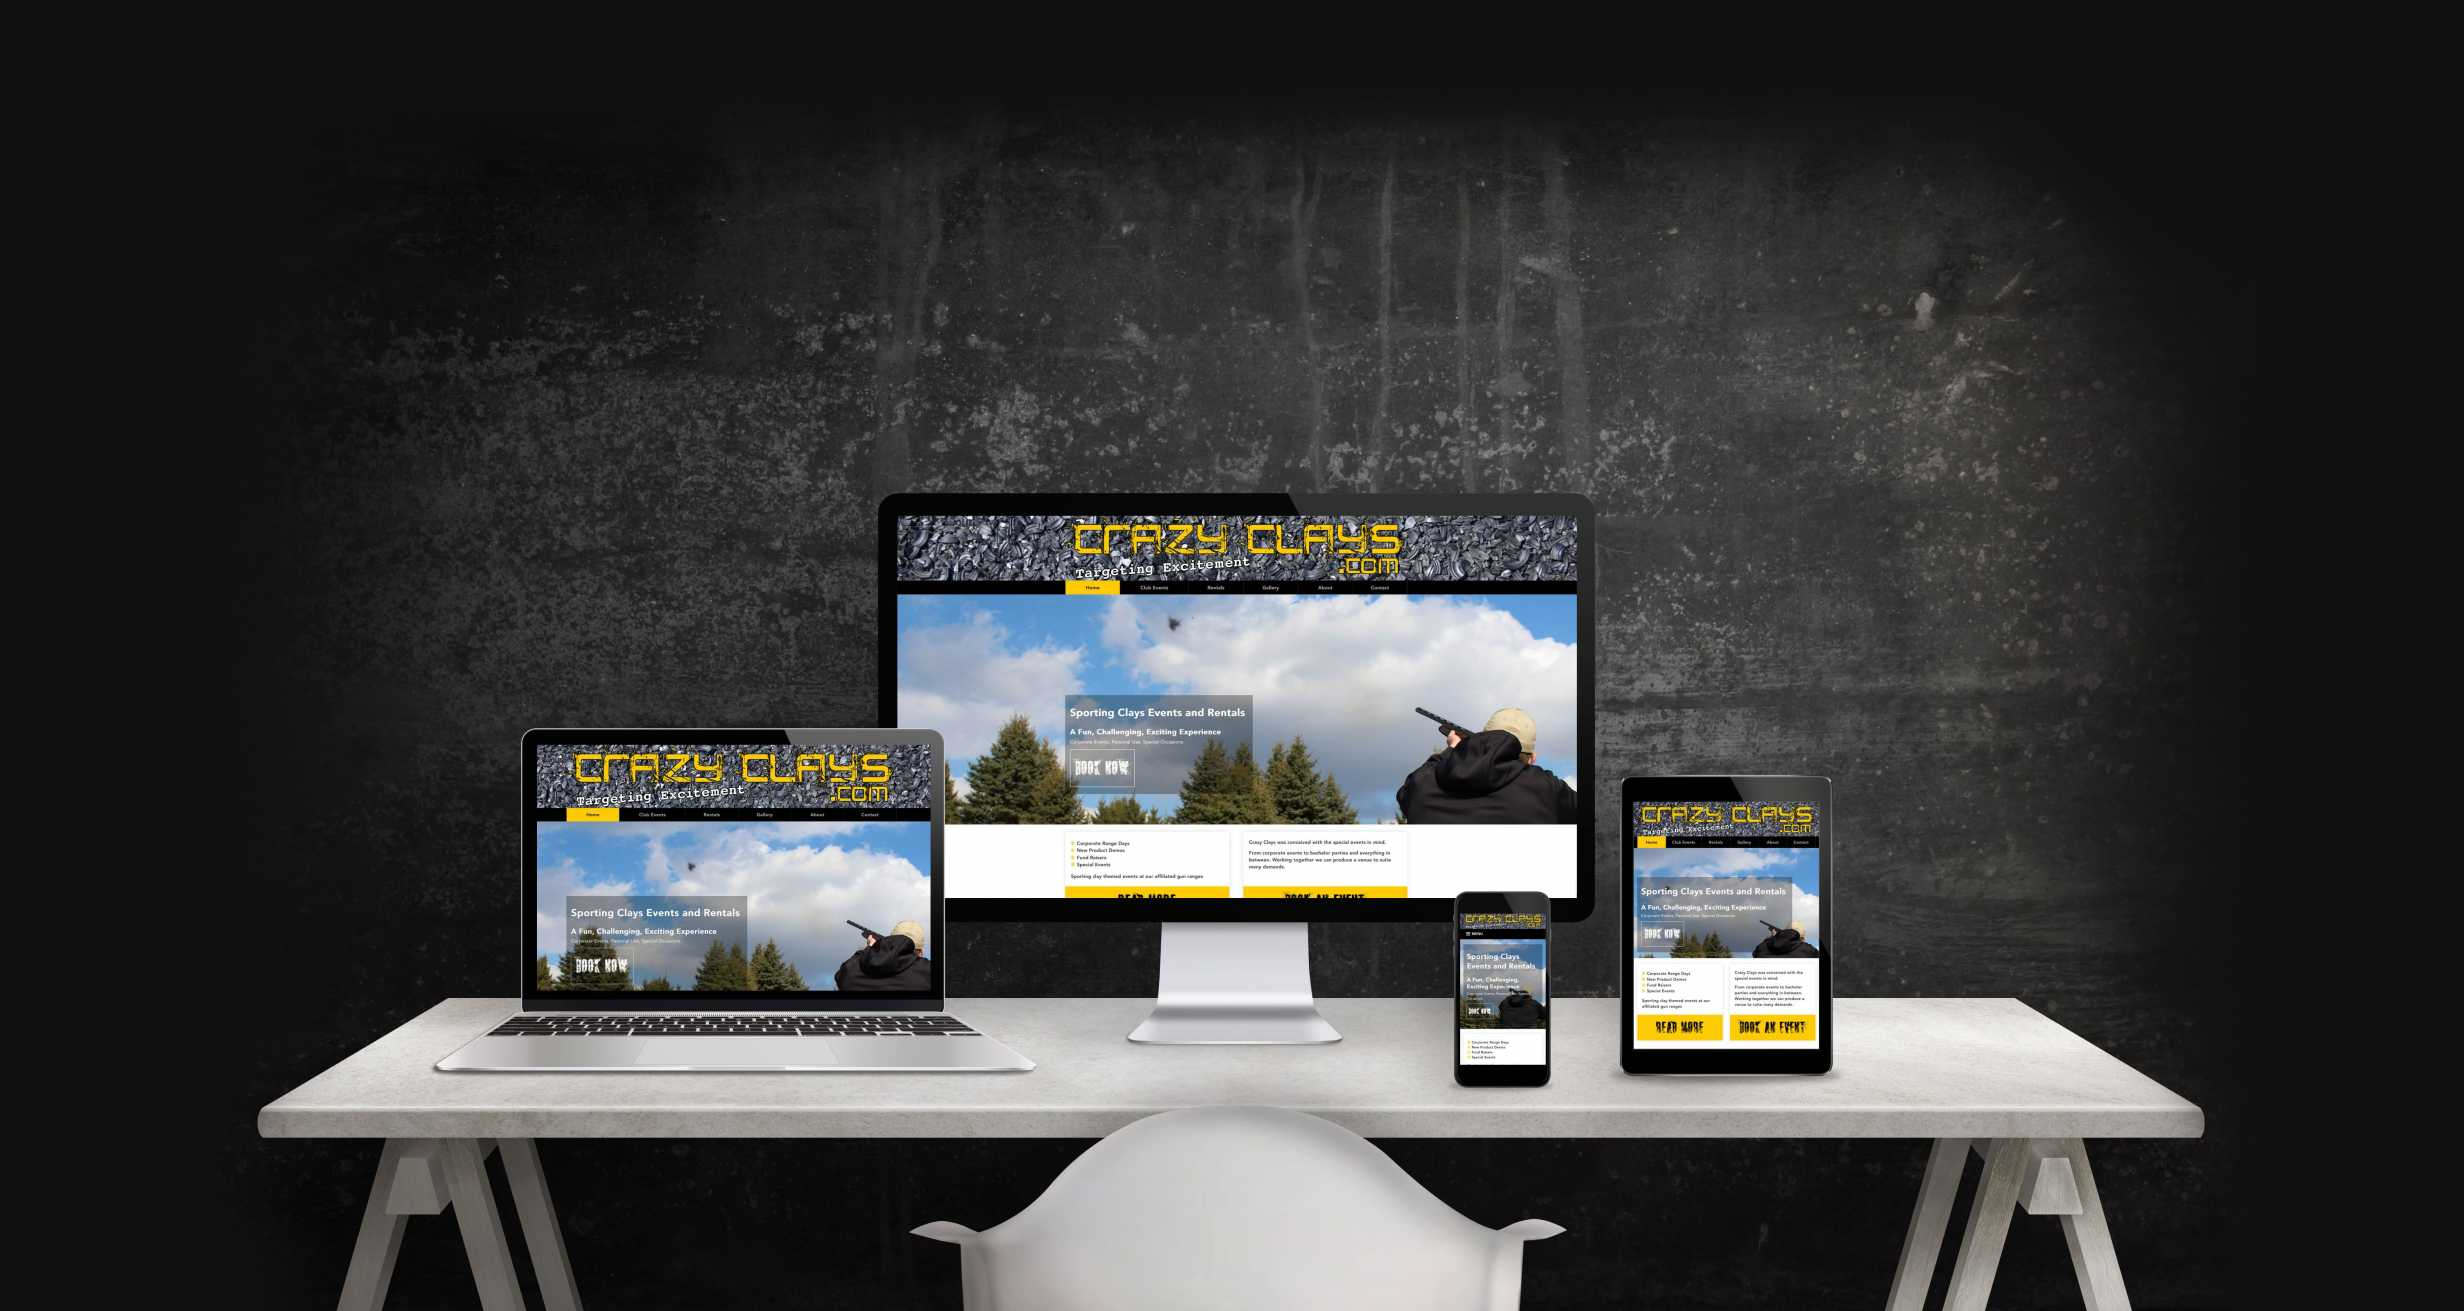 Mock-up of Crazy Clays website showing desktop, laptop, tablet, and mobile home page layout.